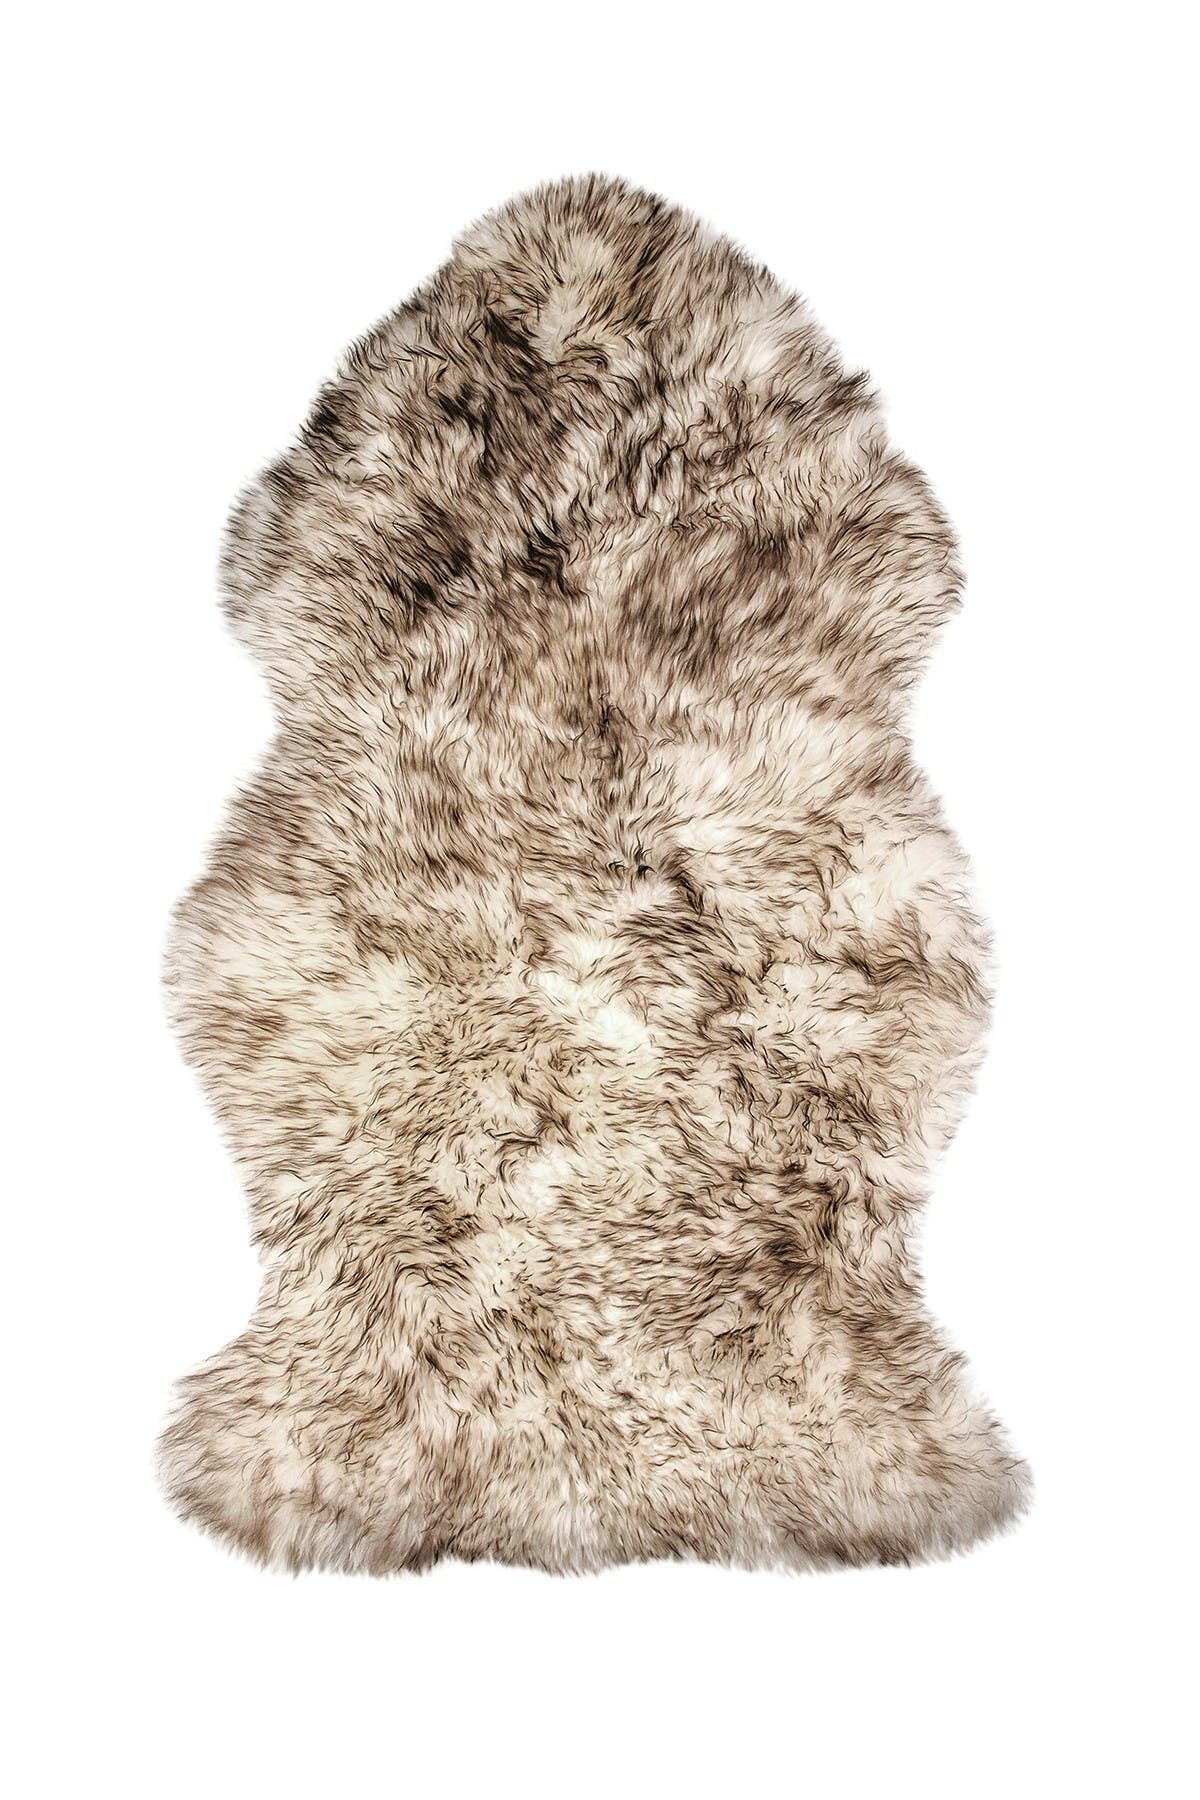 Image of Natural New Zealand Genuine Sheepskin Rug - 2ft x 3ft - Gradient Chocolate